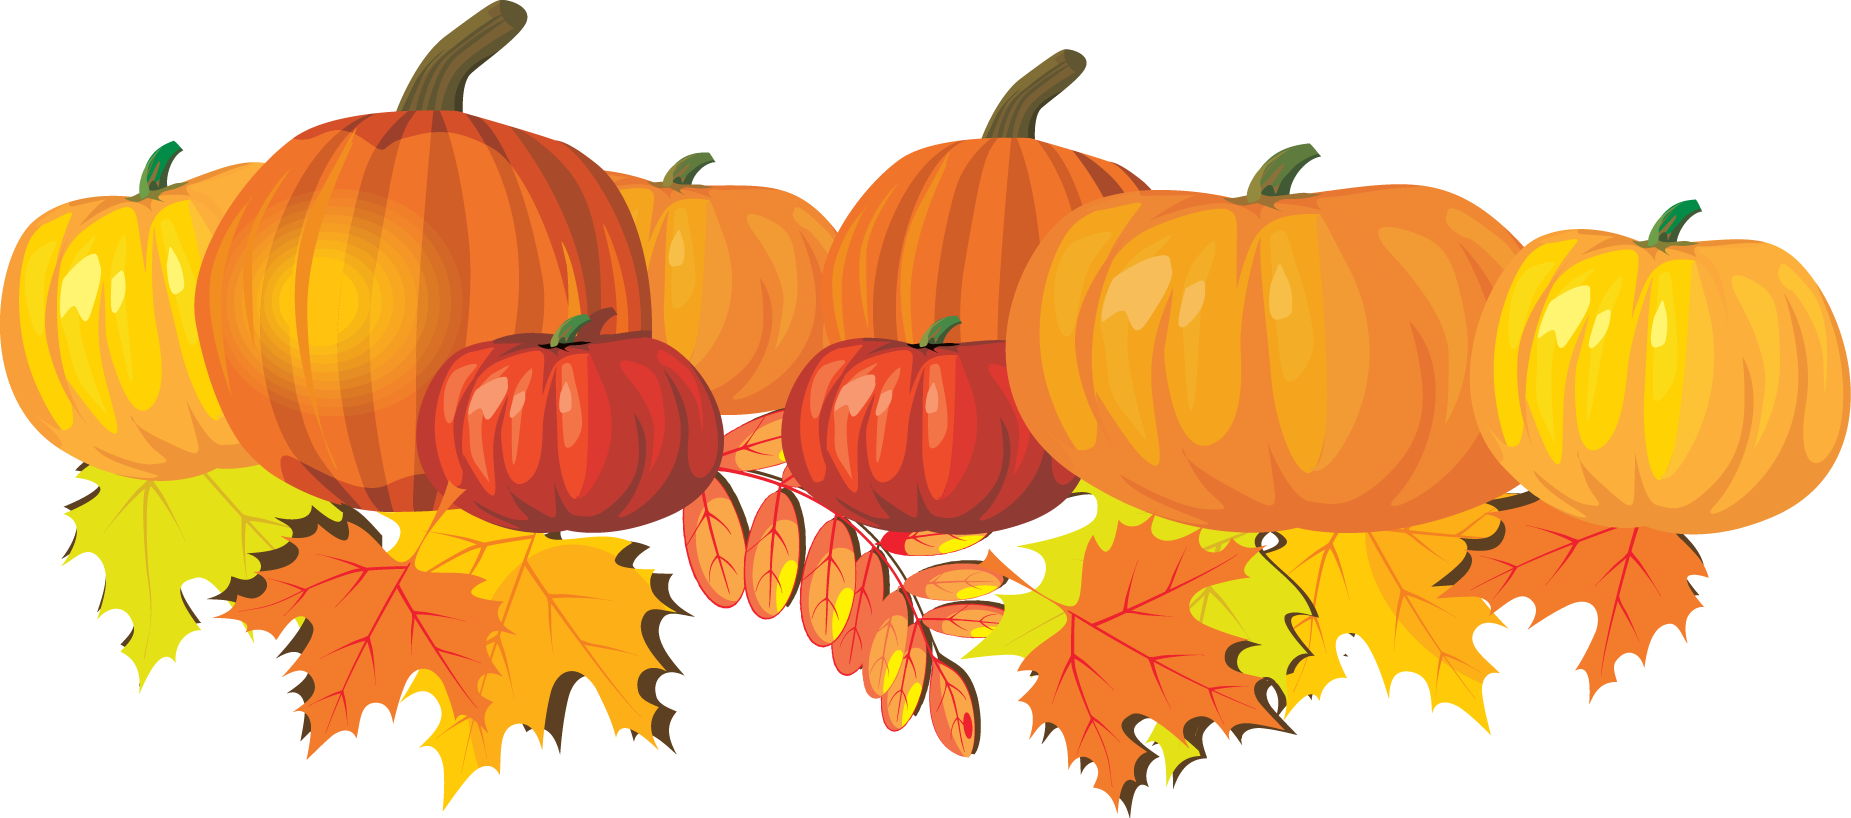 Pumpkin clipart free black and white clip black and white download 28+ Collection of Fall Leaves And Pumpkin Clipart | High quality ... clip black and white download